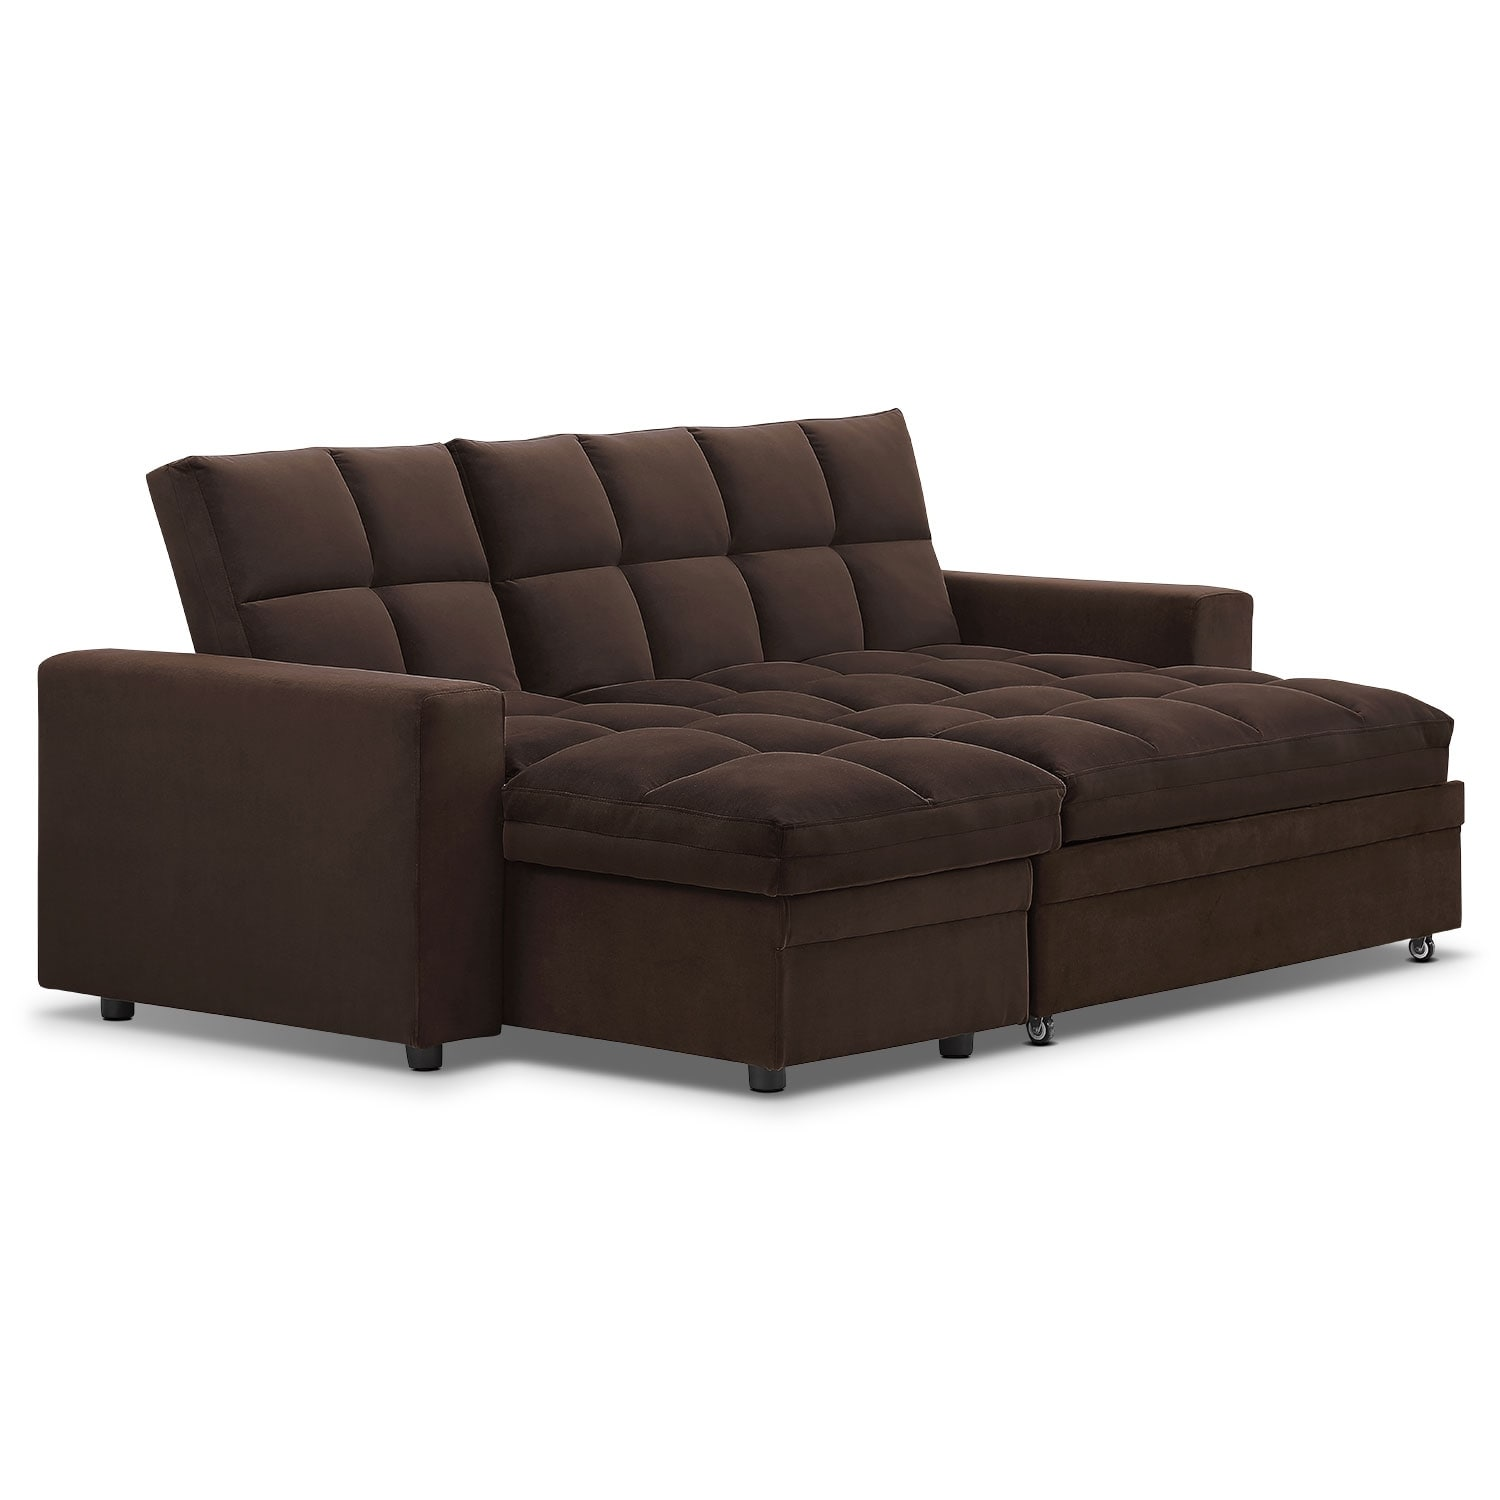 Metro chaise sofa bed with storage brown value city for Brown chaise sofa